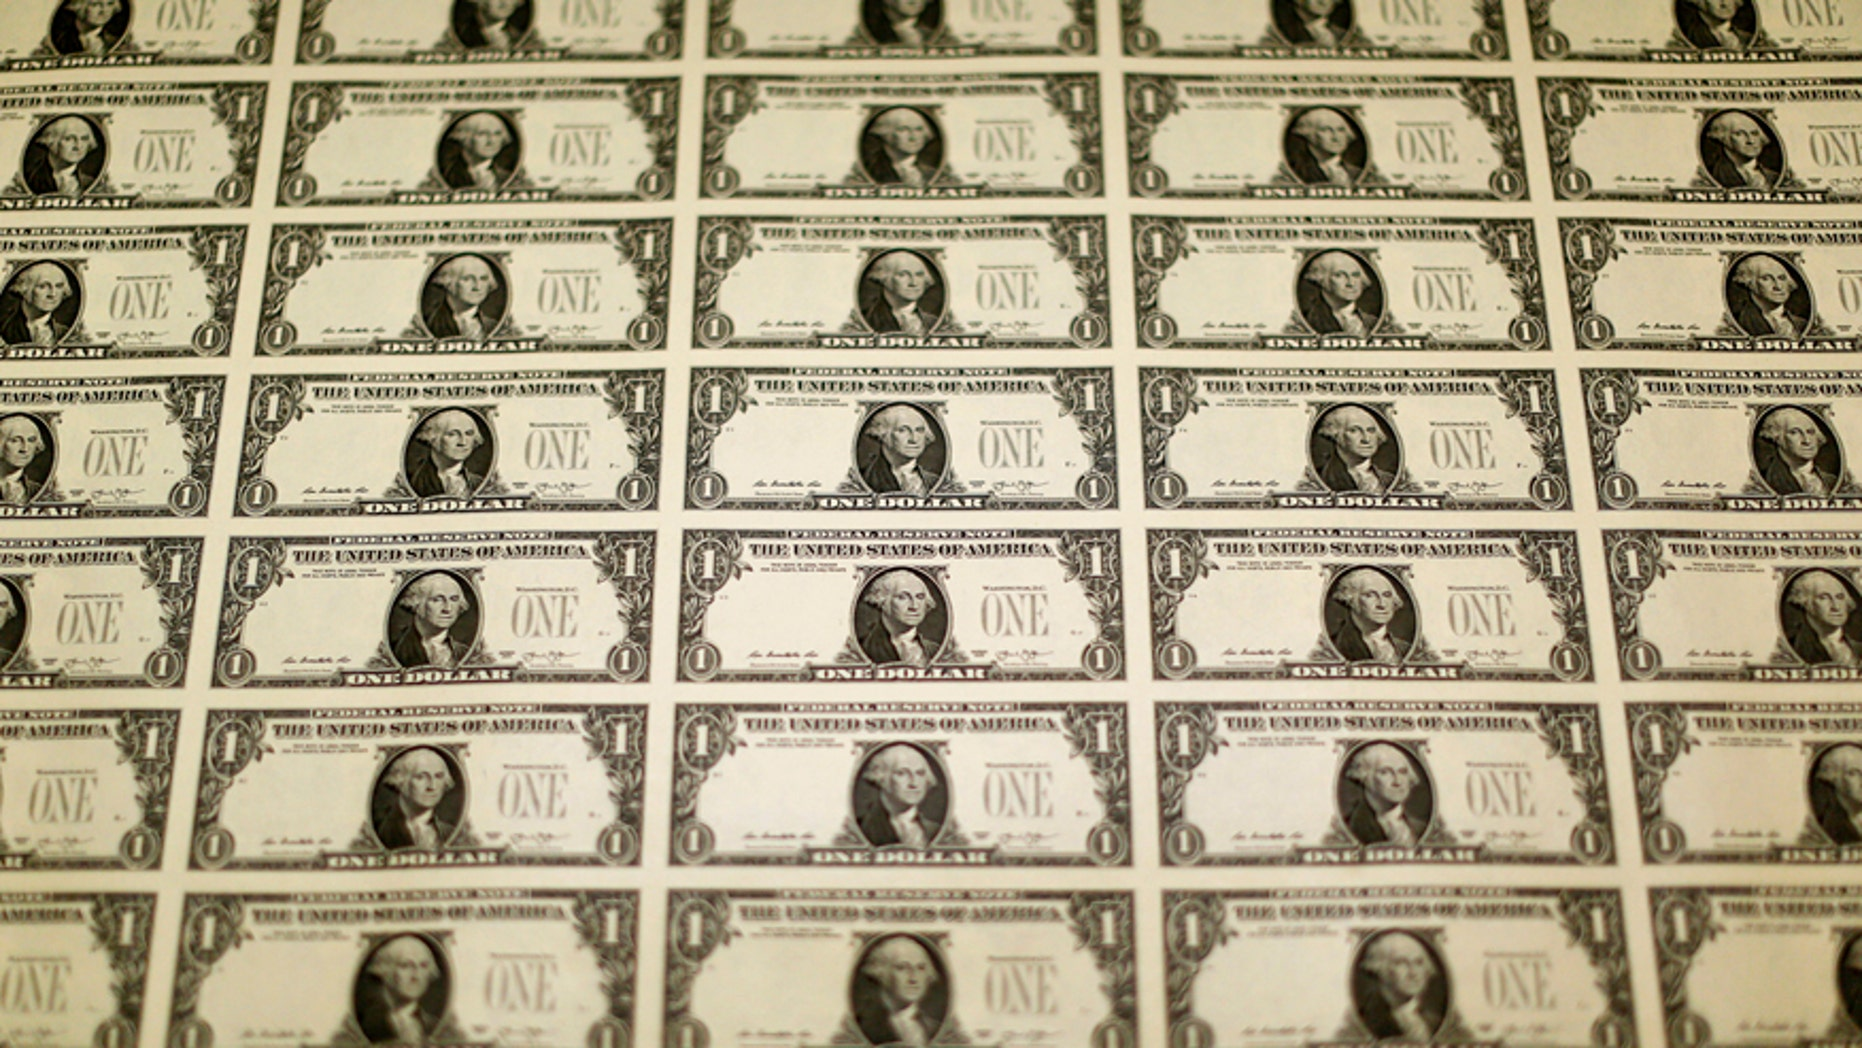 A sheet of the front side of United States one dollar bills is seen during production at the Bureau of Engraving and Printing in Washington November 14, 2014.